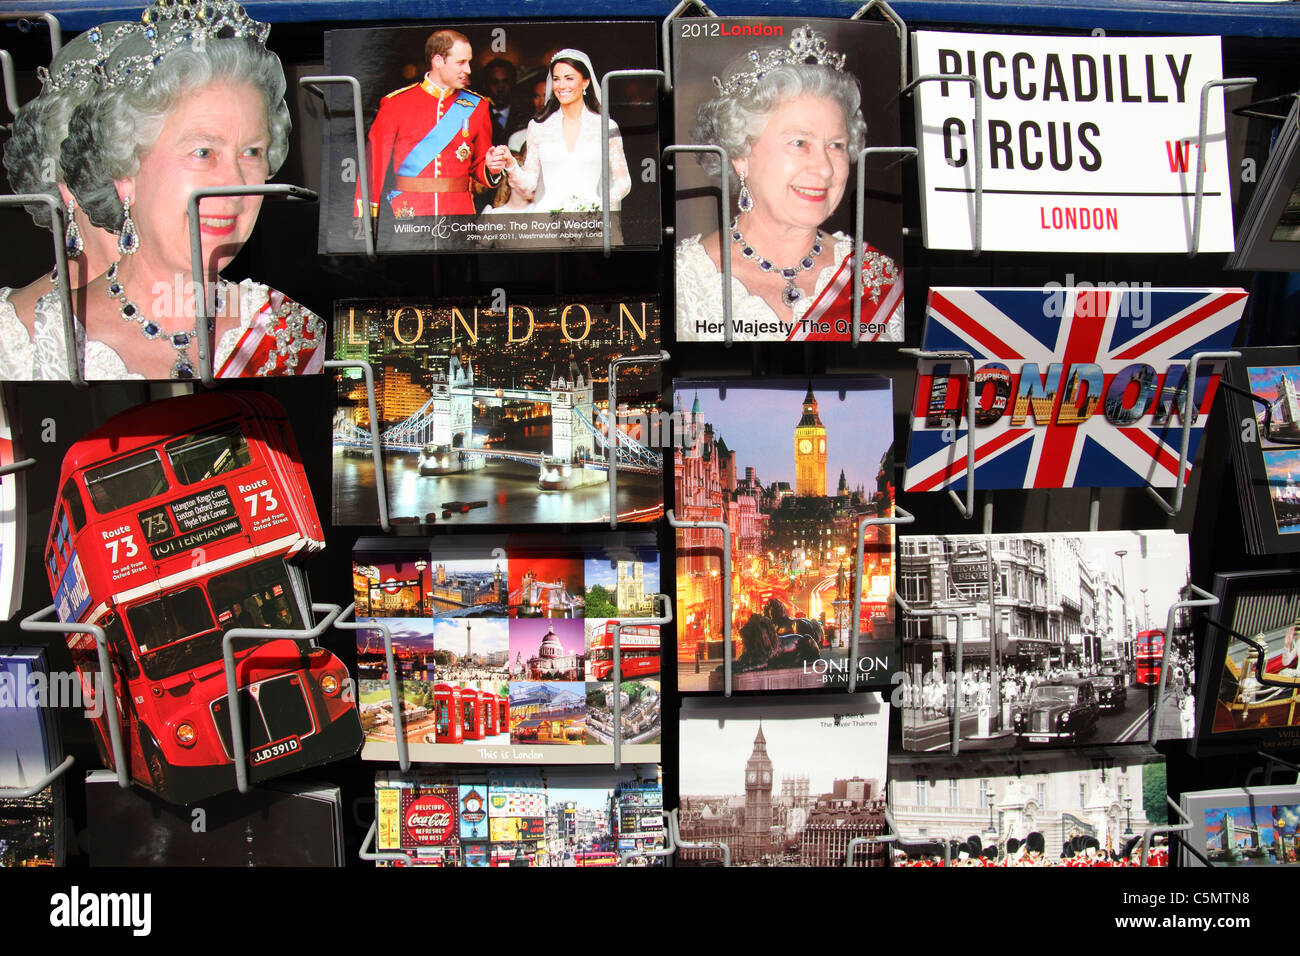 A stall selling souvenirs and postcards in Westminster, London, England, U.K. Stock Photo